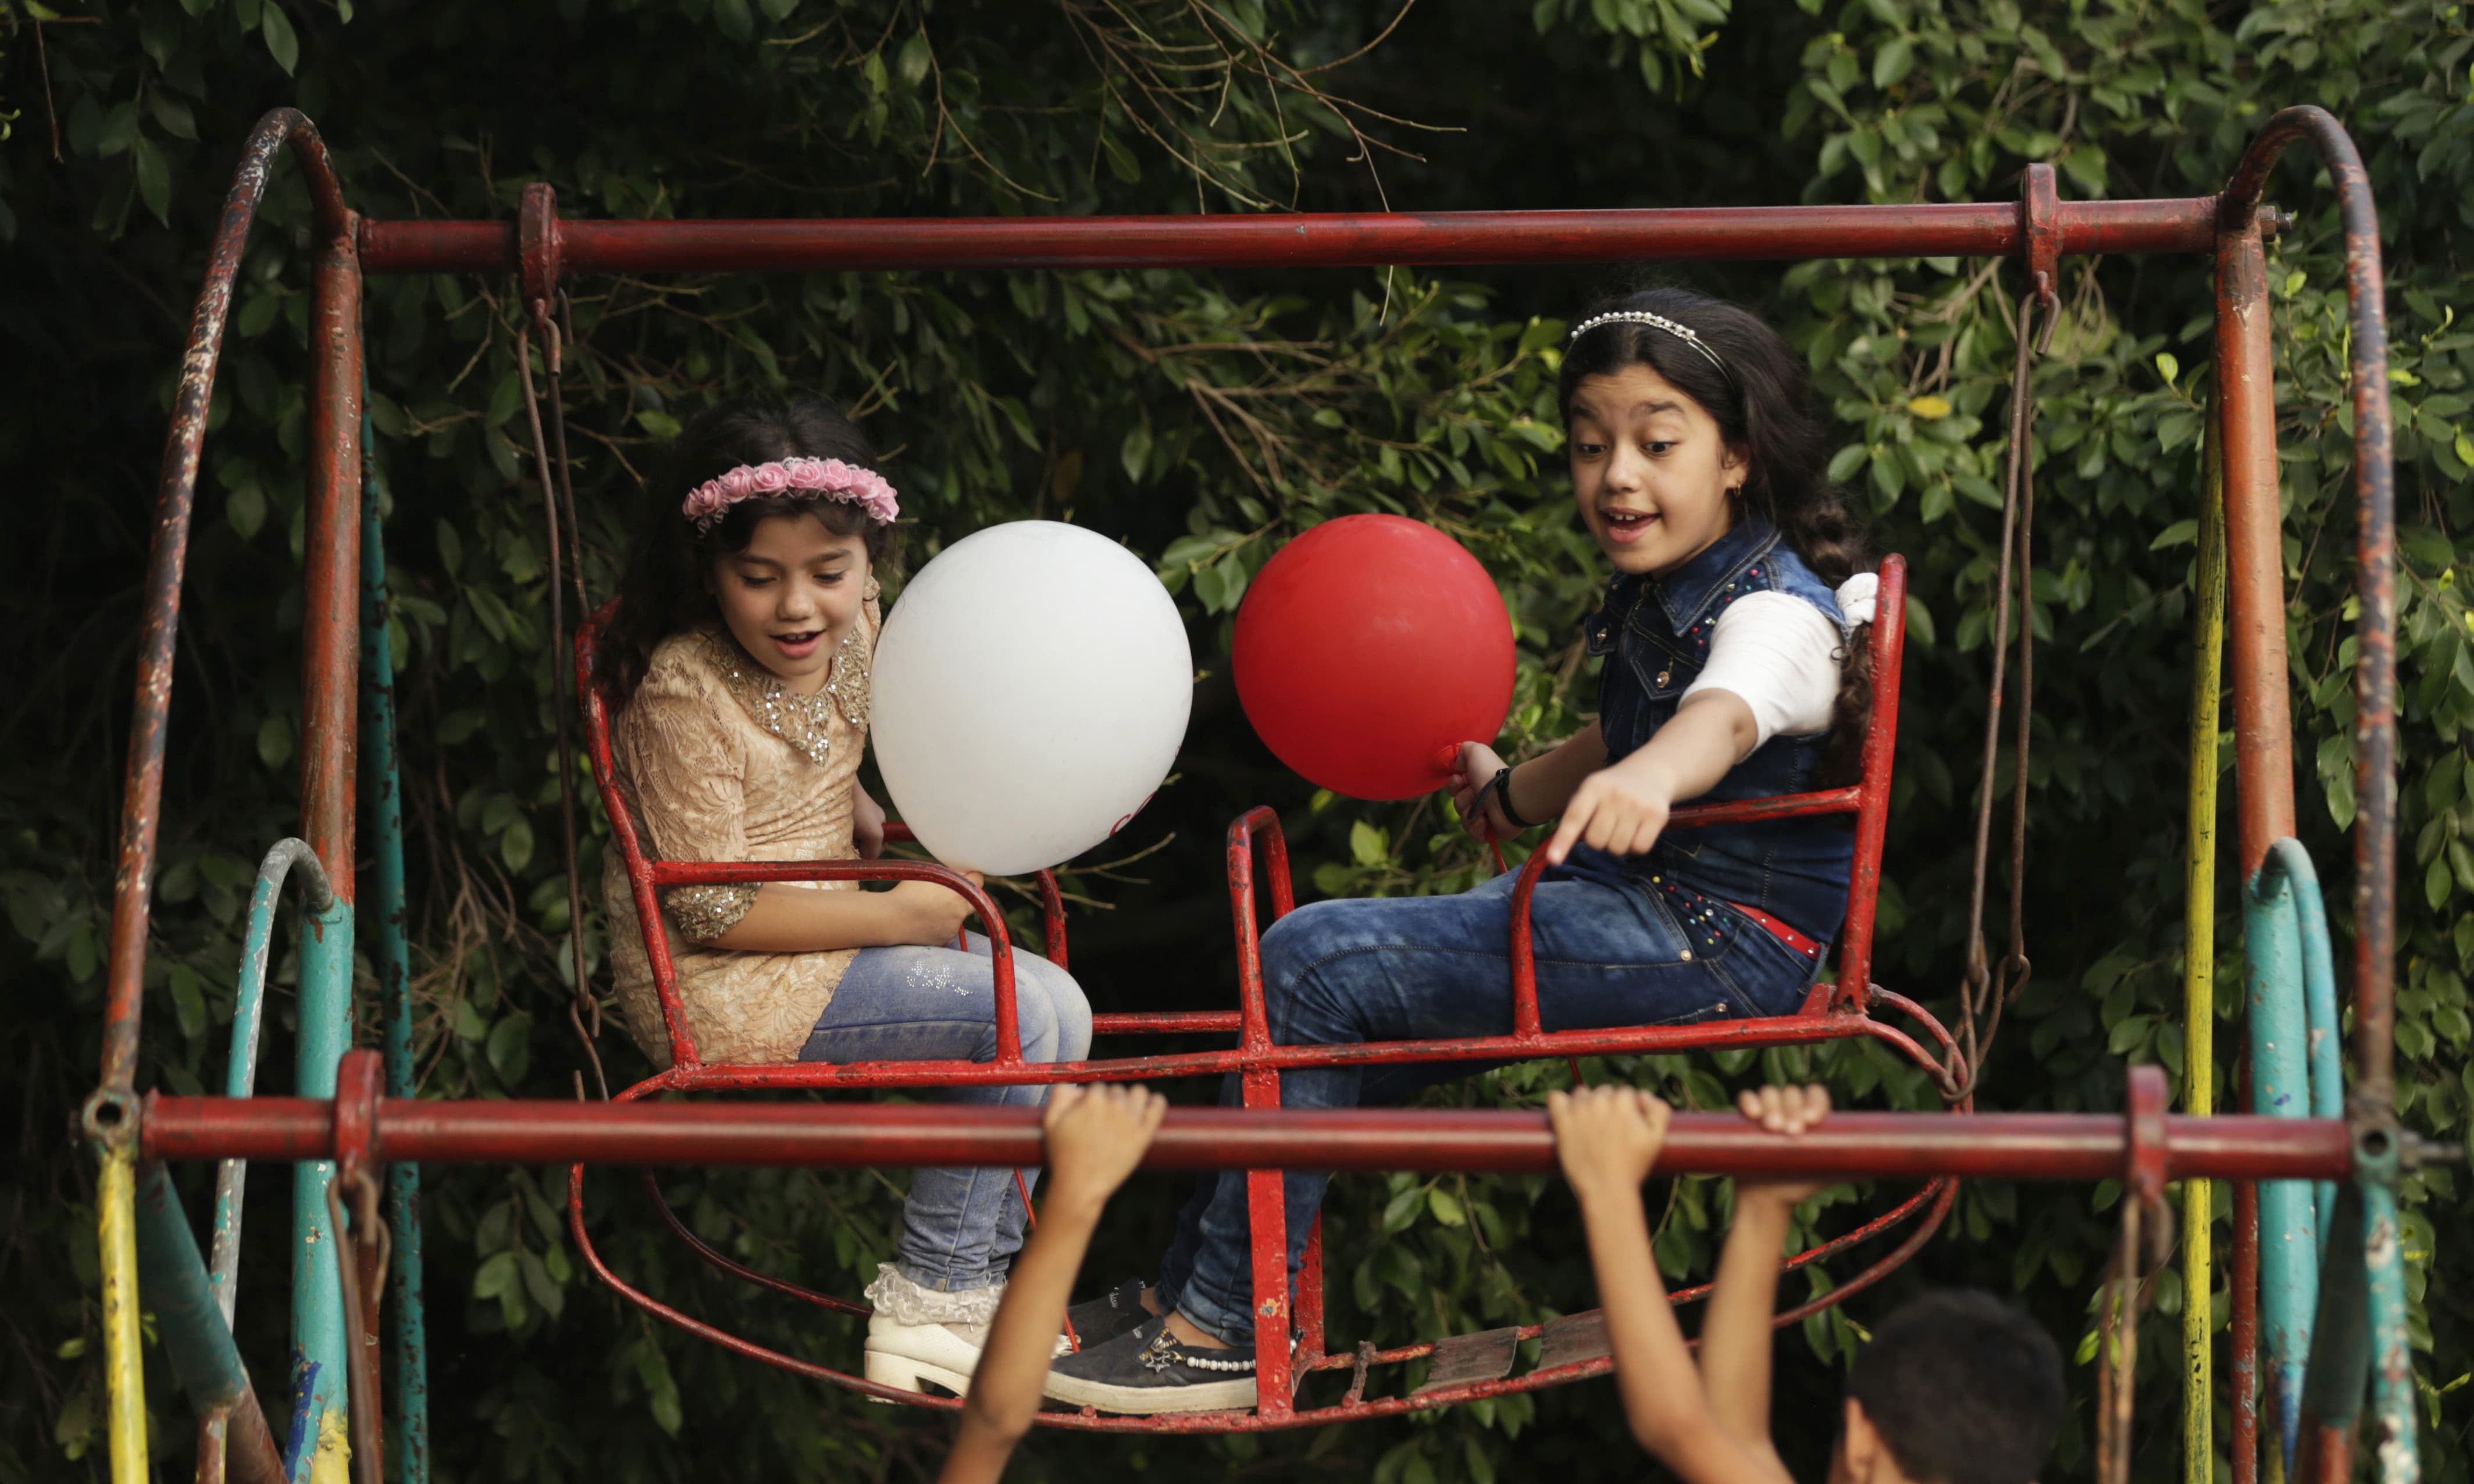 Palestinian children ride an attraction at an amusement park in Gaza City during Eidul Azha holiday. —AFP